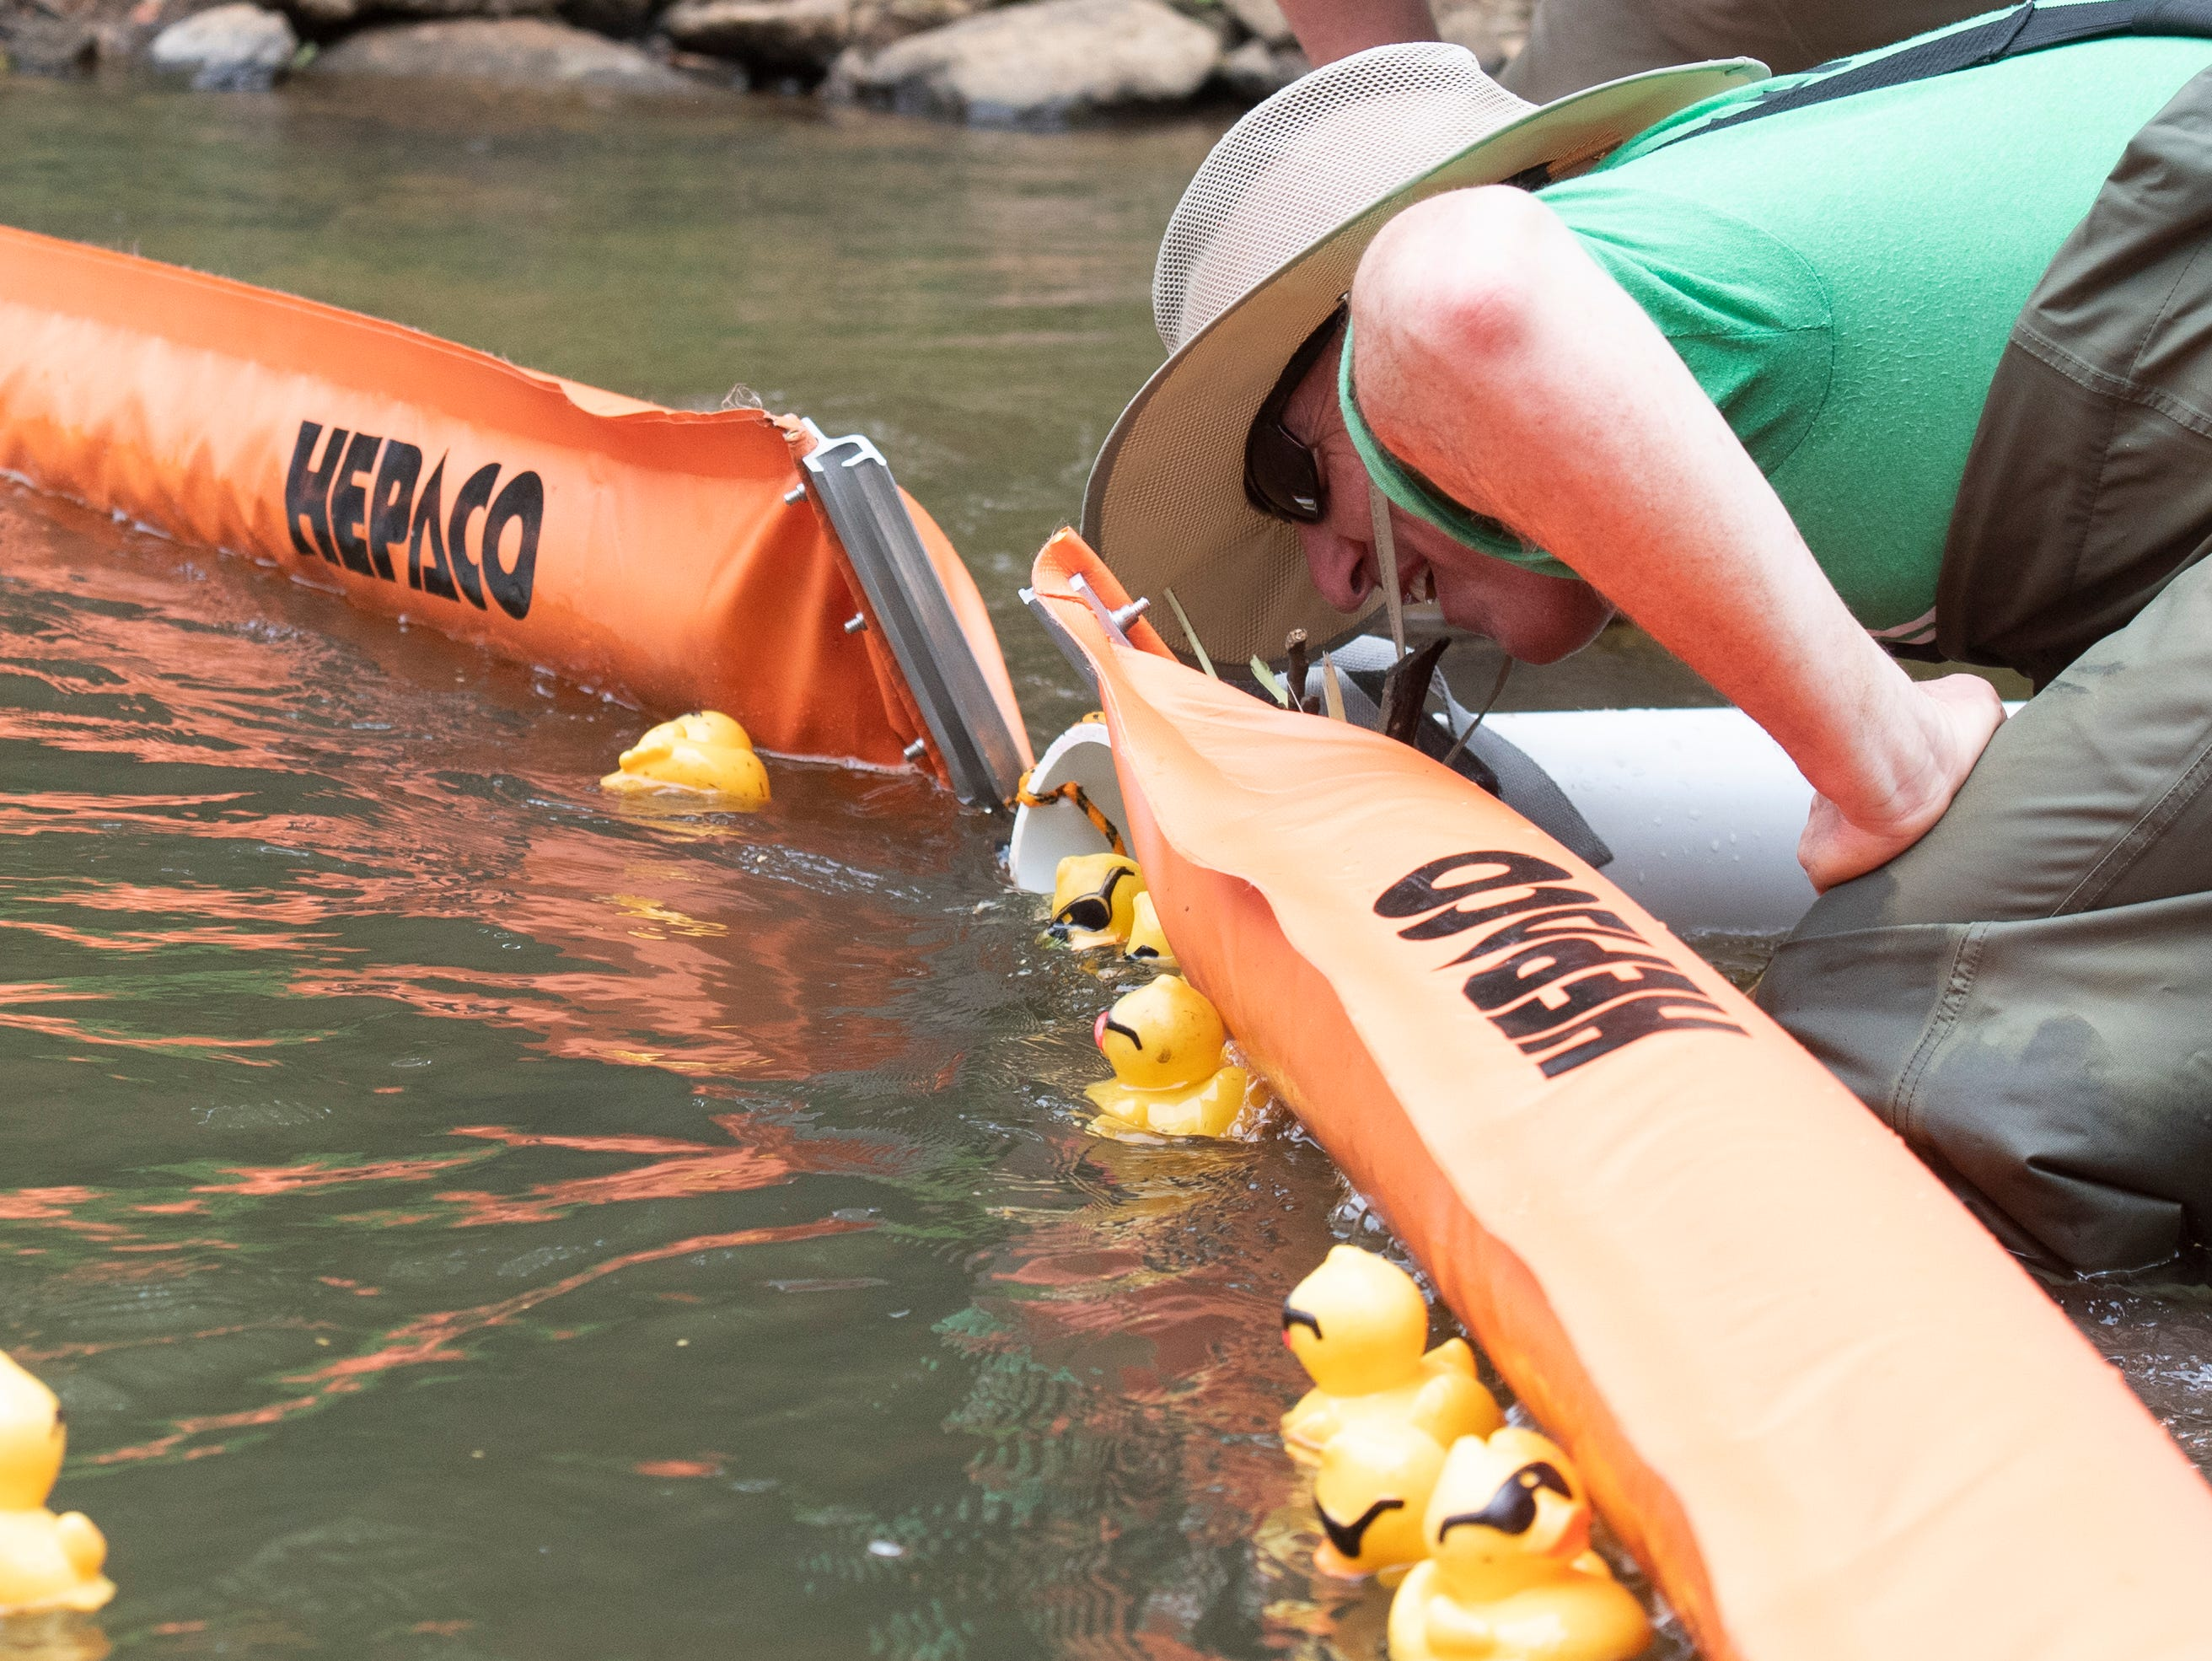 Ed Calloway watches to see which rubber duck will be in first place in the 2019 Reedy River Duck Derby in Falls Park on the Reedy Saturday, May 4, 2019.